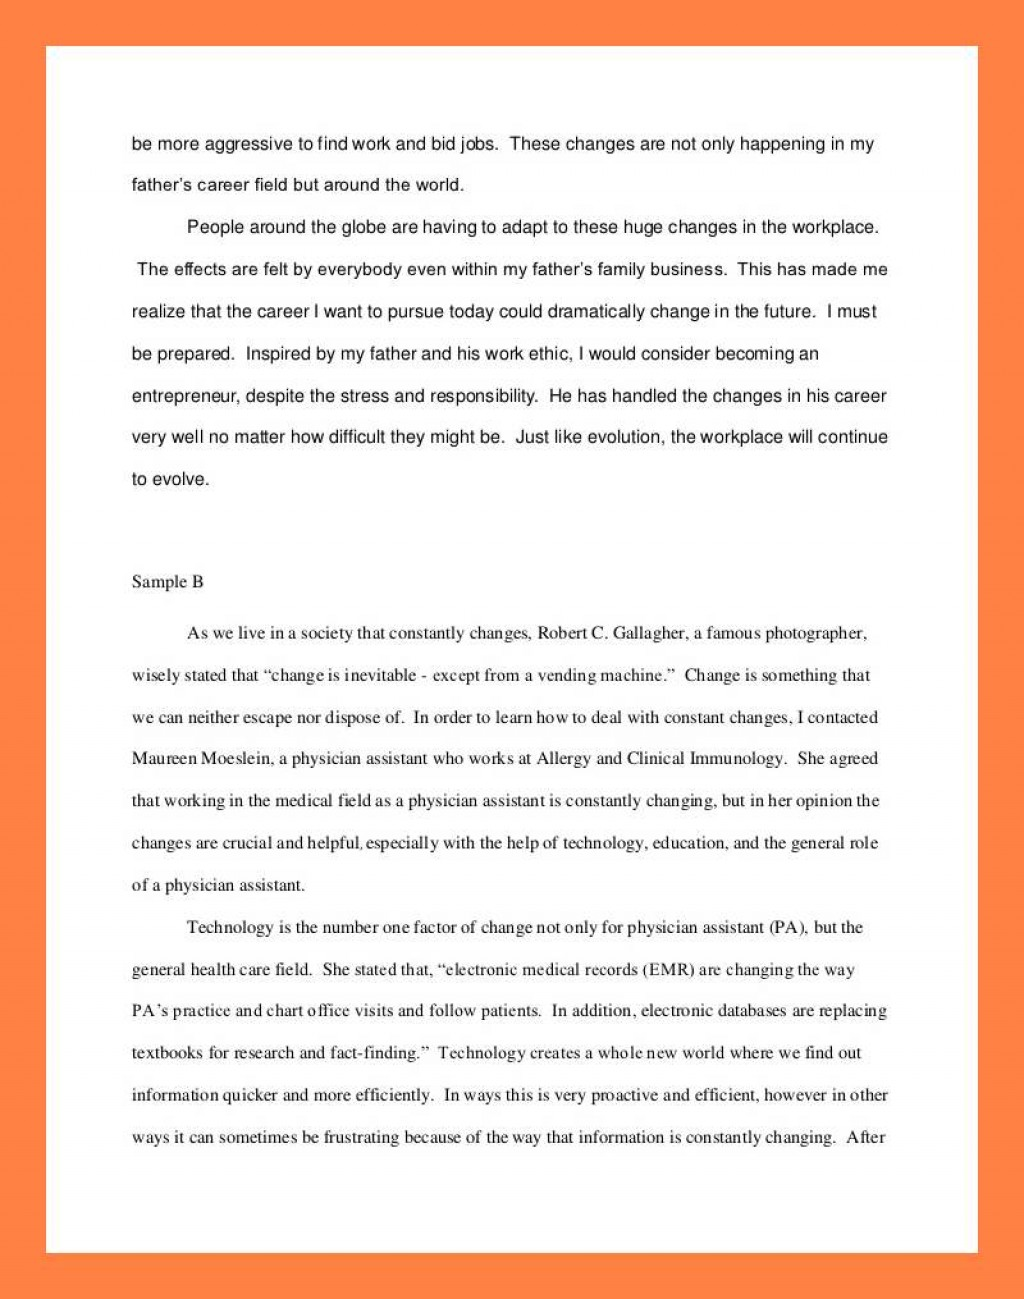 012 Interview Essay Example Examples Of Student Reflections Shocking Paper Format Apa Mla Large